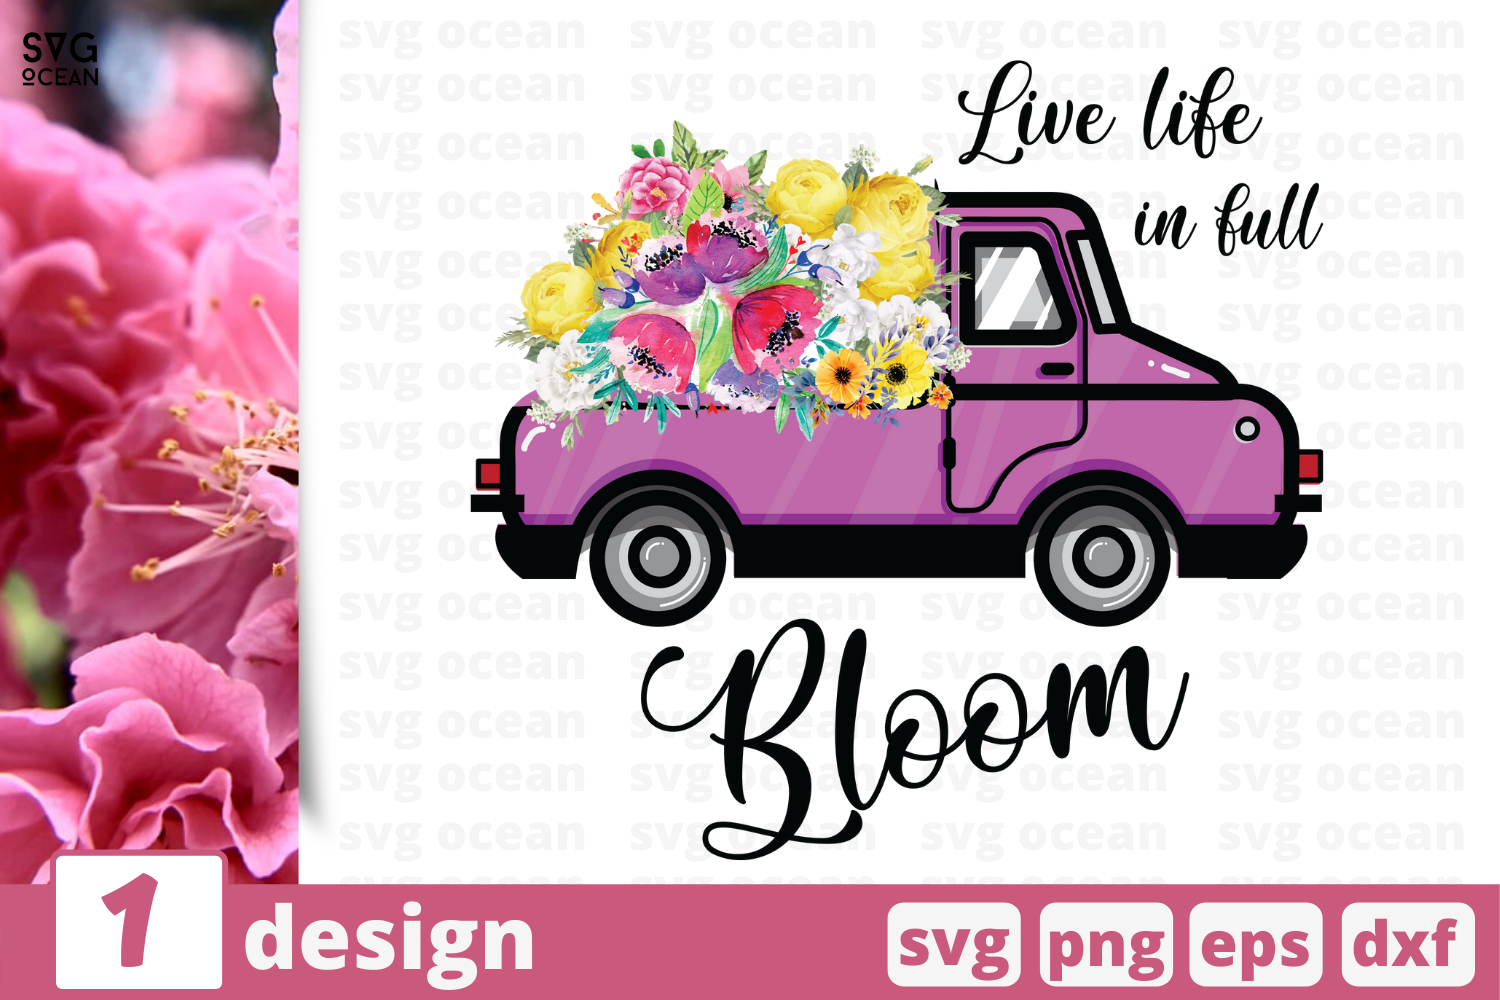 Download Free Live Life In Bloom Graphic By Svgocean Creative Fabrica for Cricut Explore, Silhouette and other cutting machines.